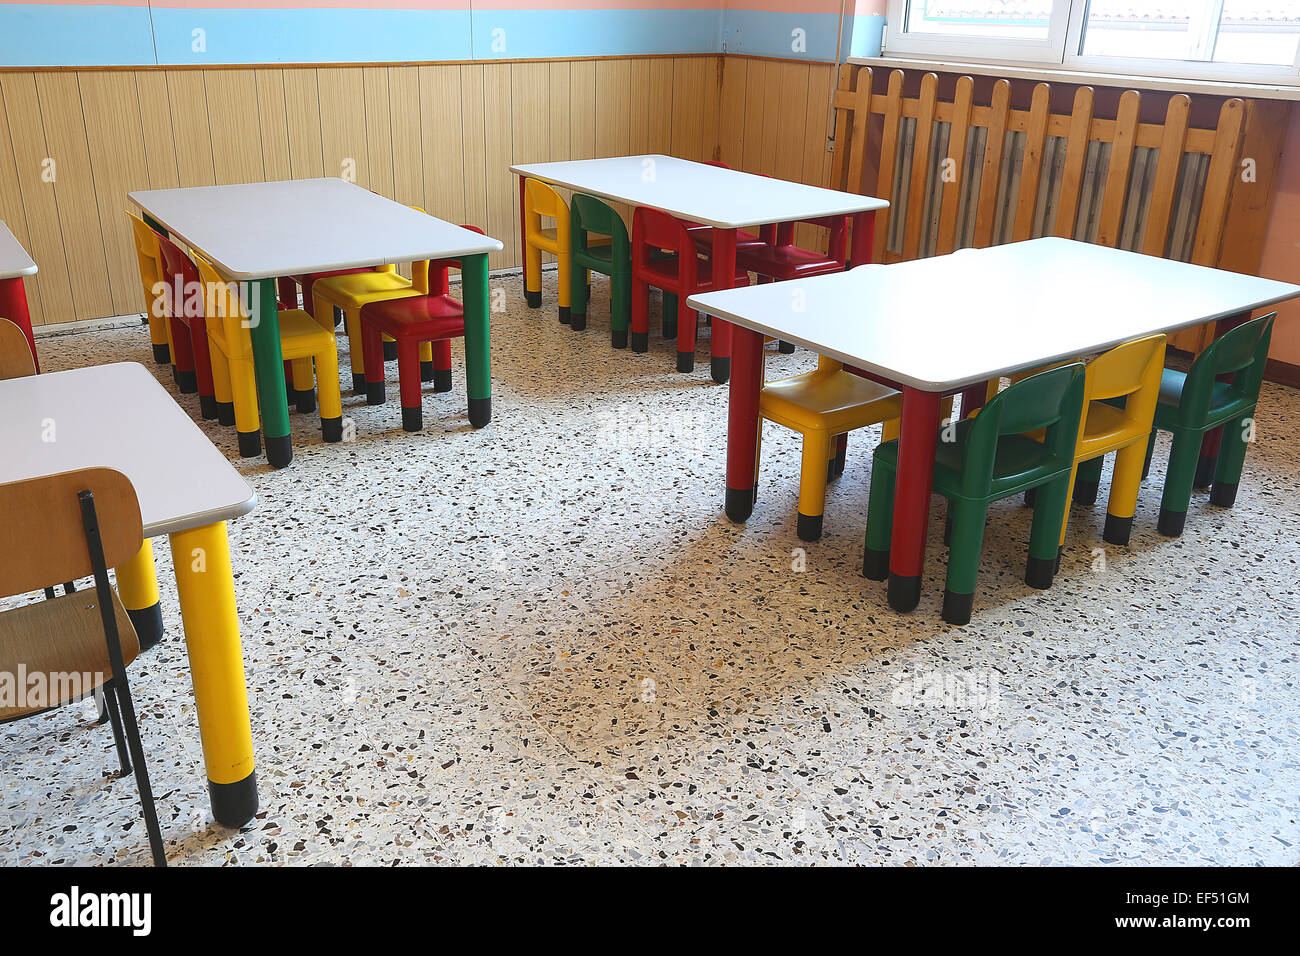 colored plastic chairs and small tables of school refectory for